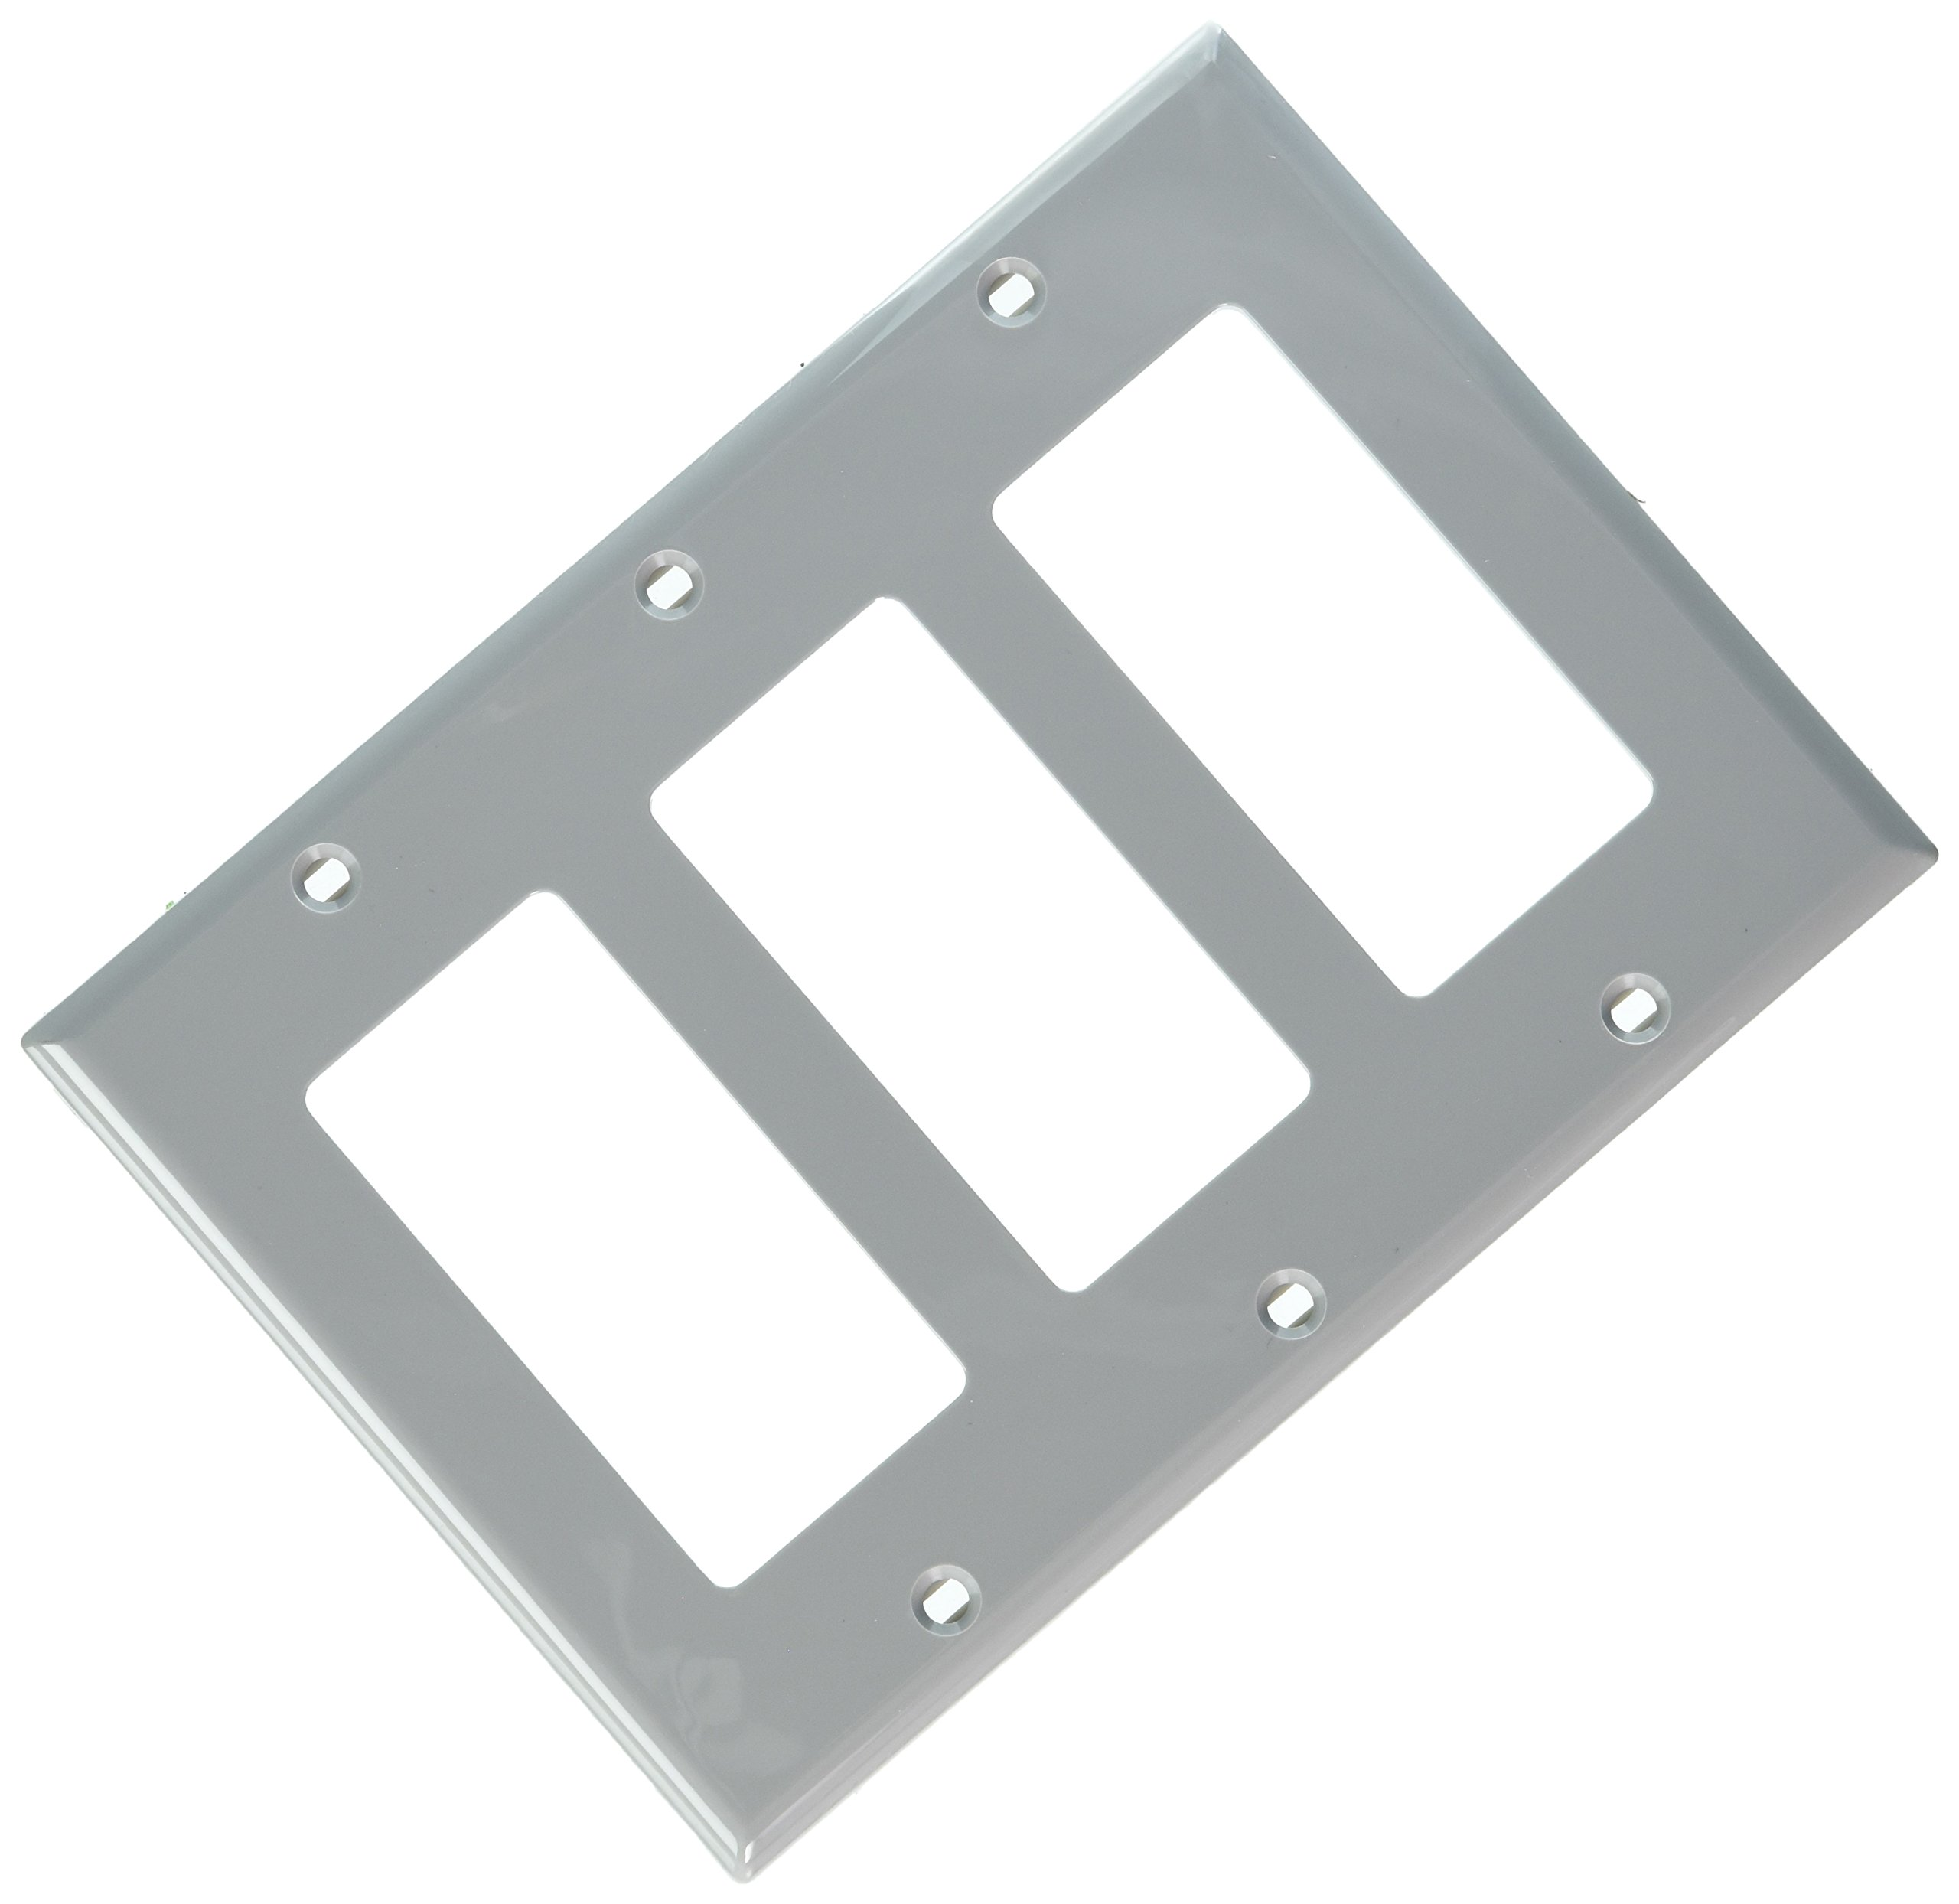 Leviton 80411-NGY 3-Gang Decora/GFCI Device Decora Wallplate, Standard Size, Thermoset, Device Mount, Gray, 10-Pack